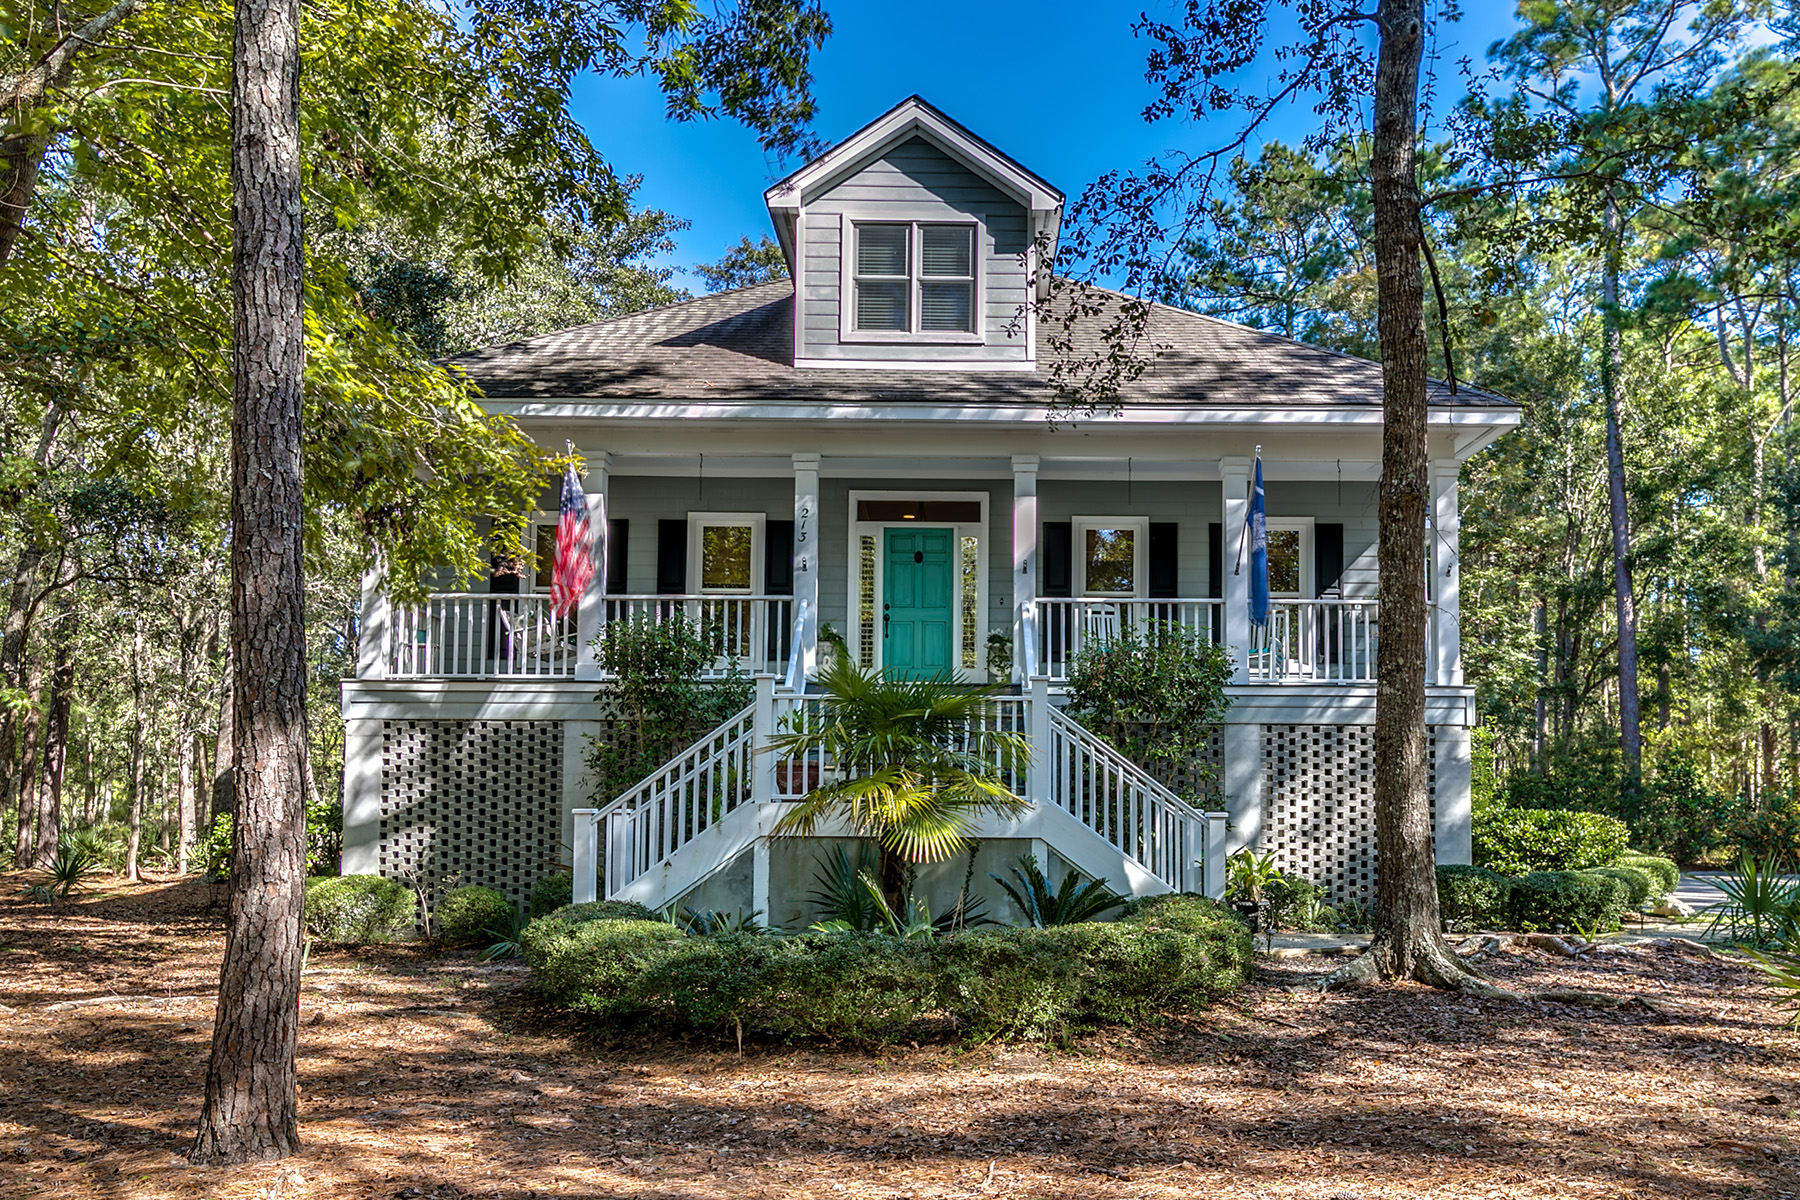 Single Family Home for Sale at 213 Old Carriage Loop, Georgetown, SC 29440 213 Old Carriage Loop Georgetown, South Carolina 29440 United States